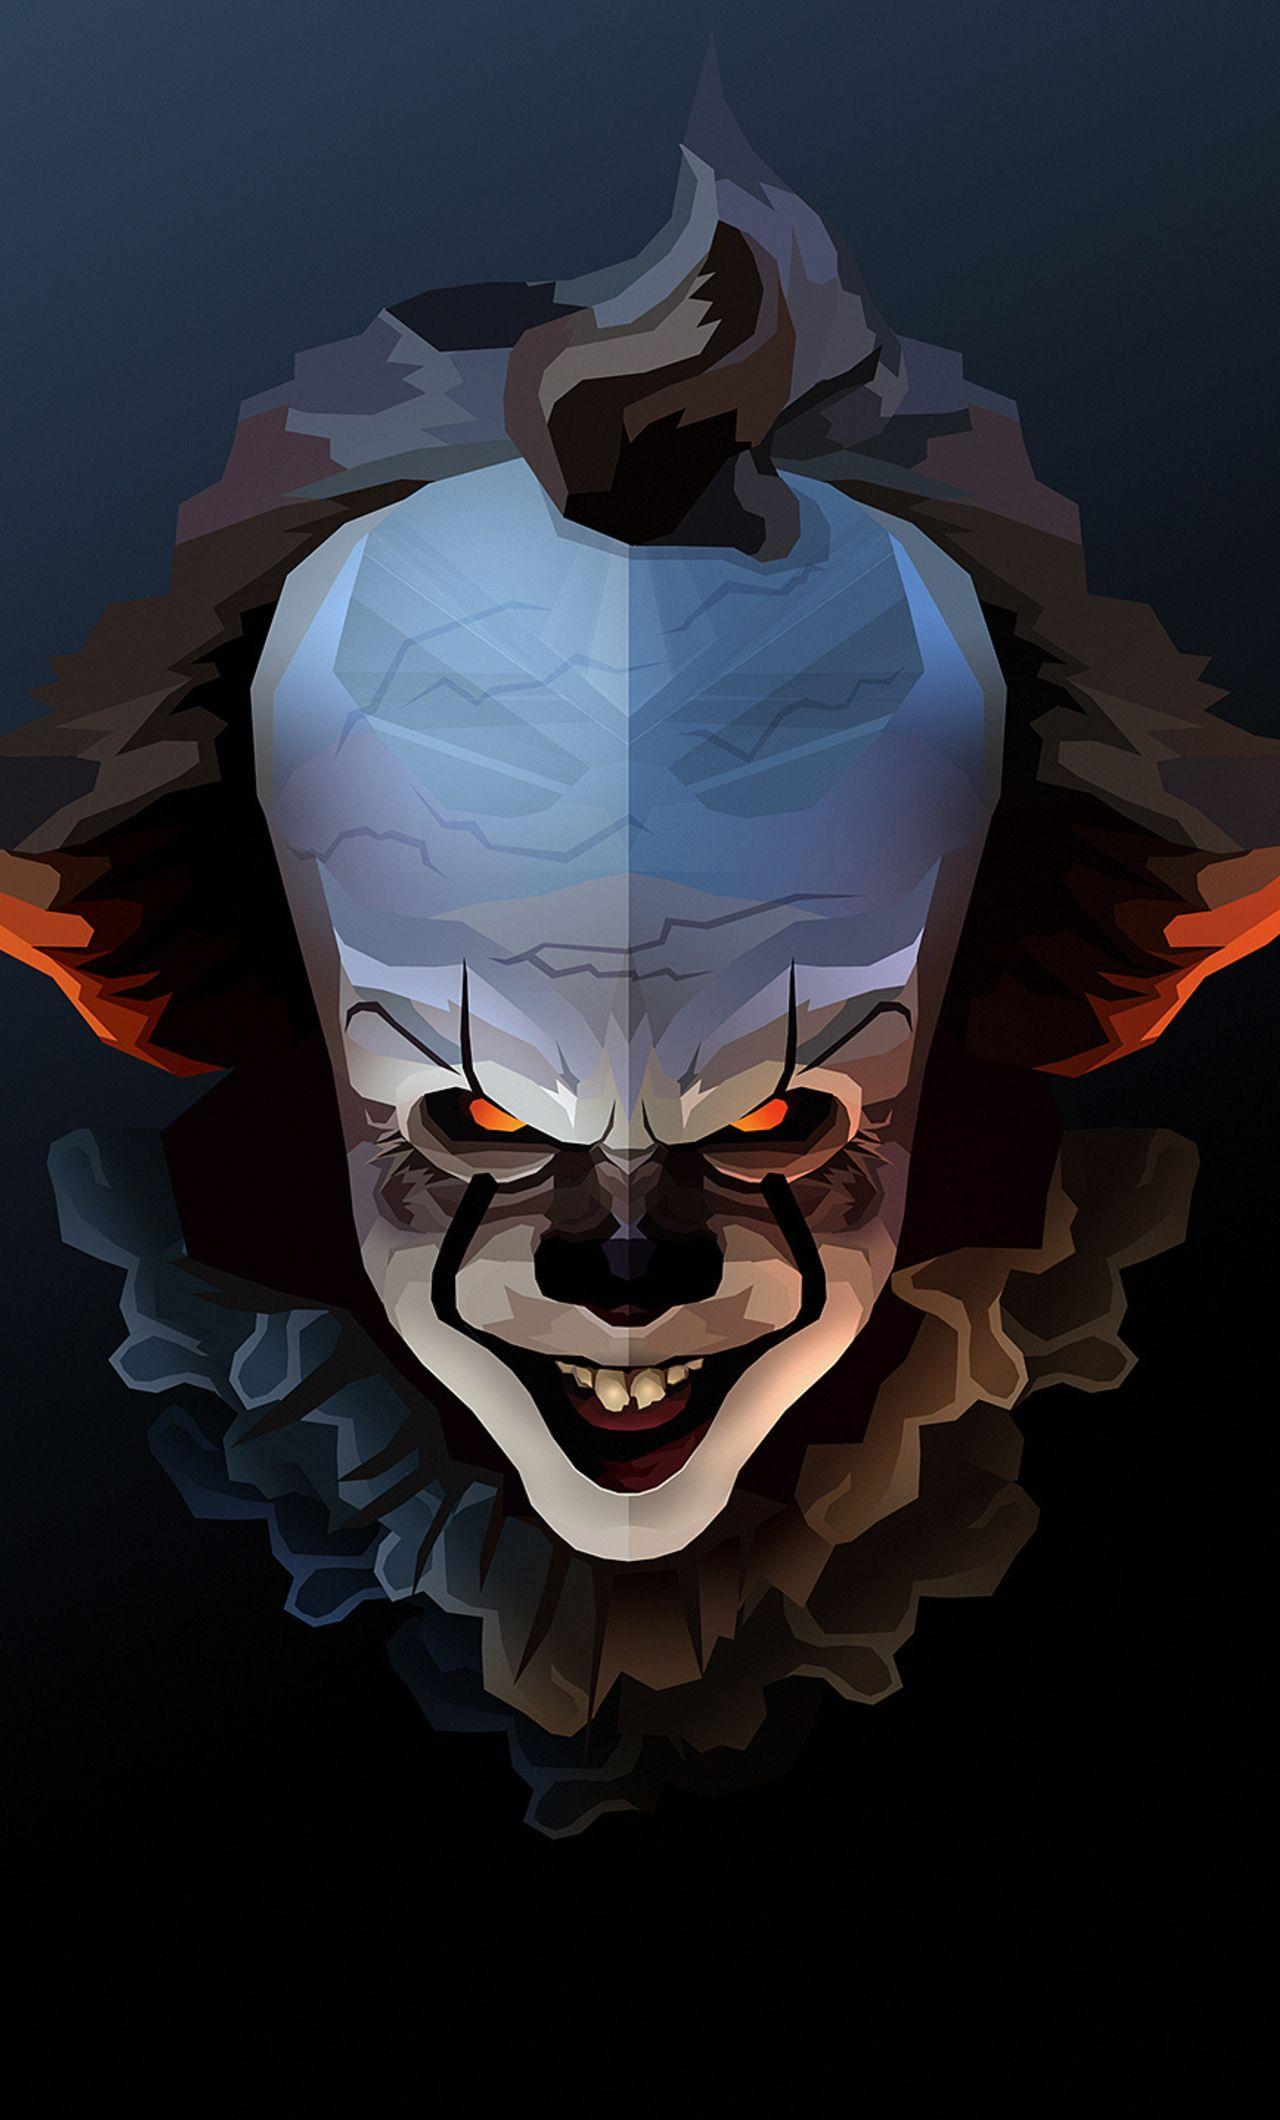 Anime Pennywise Hd Wallpapers - Wallpaper Cave